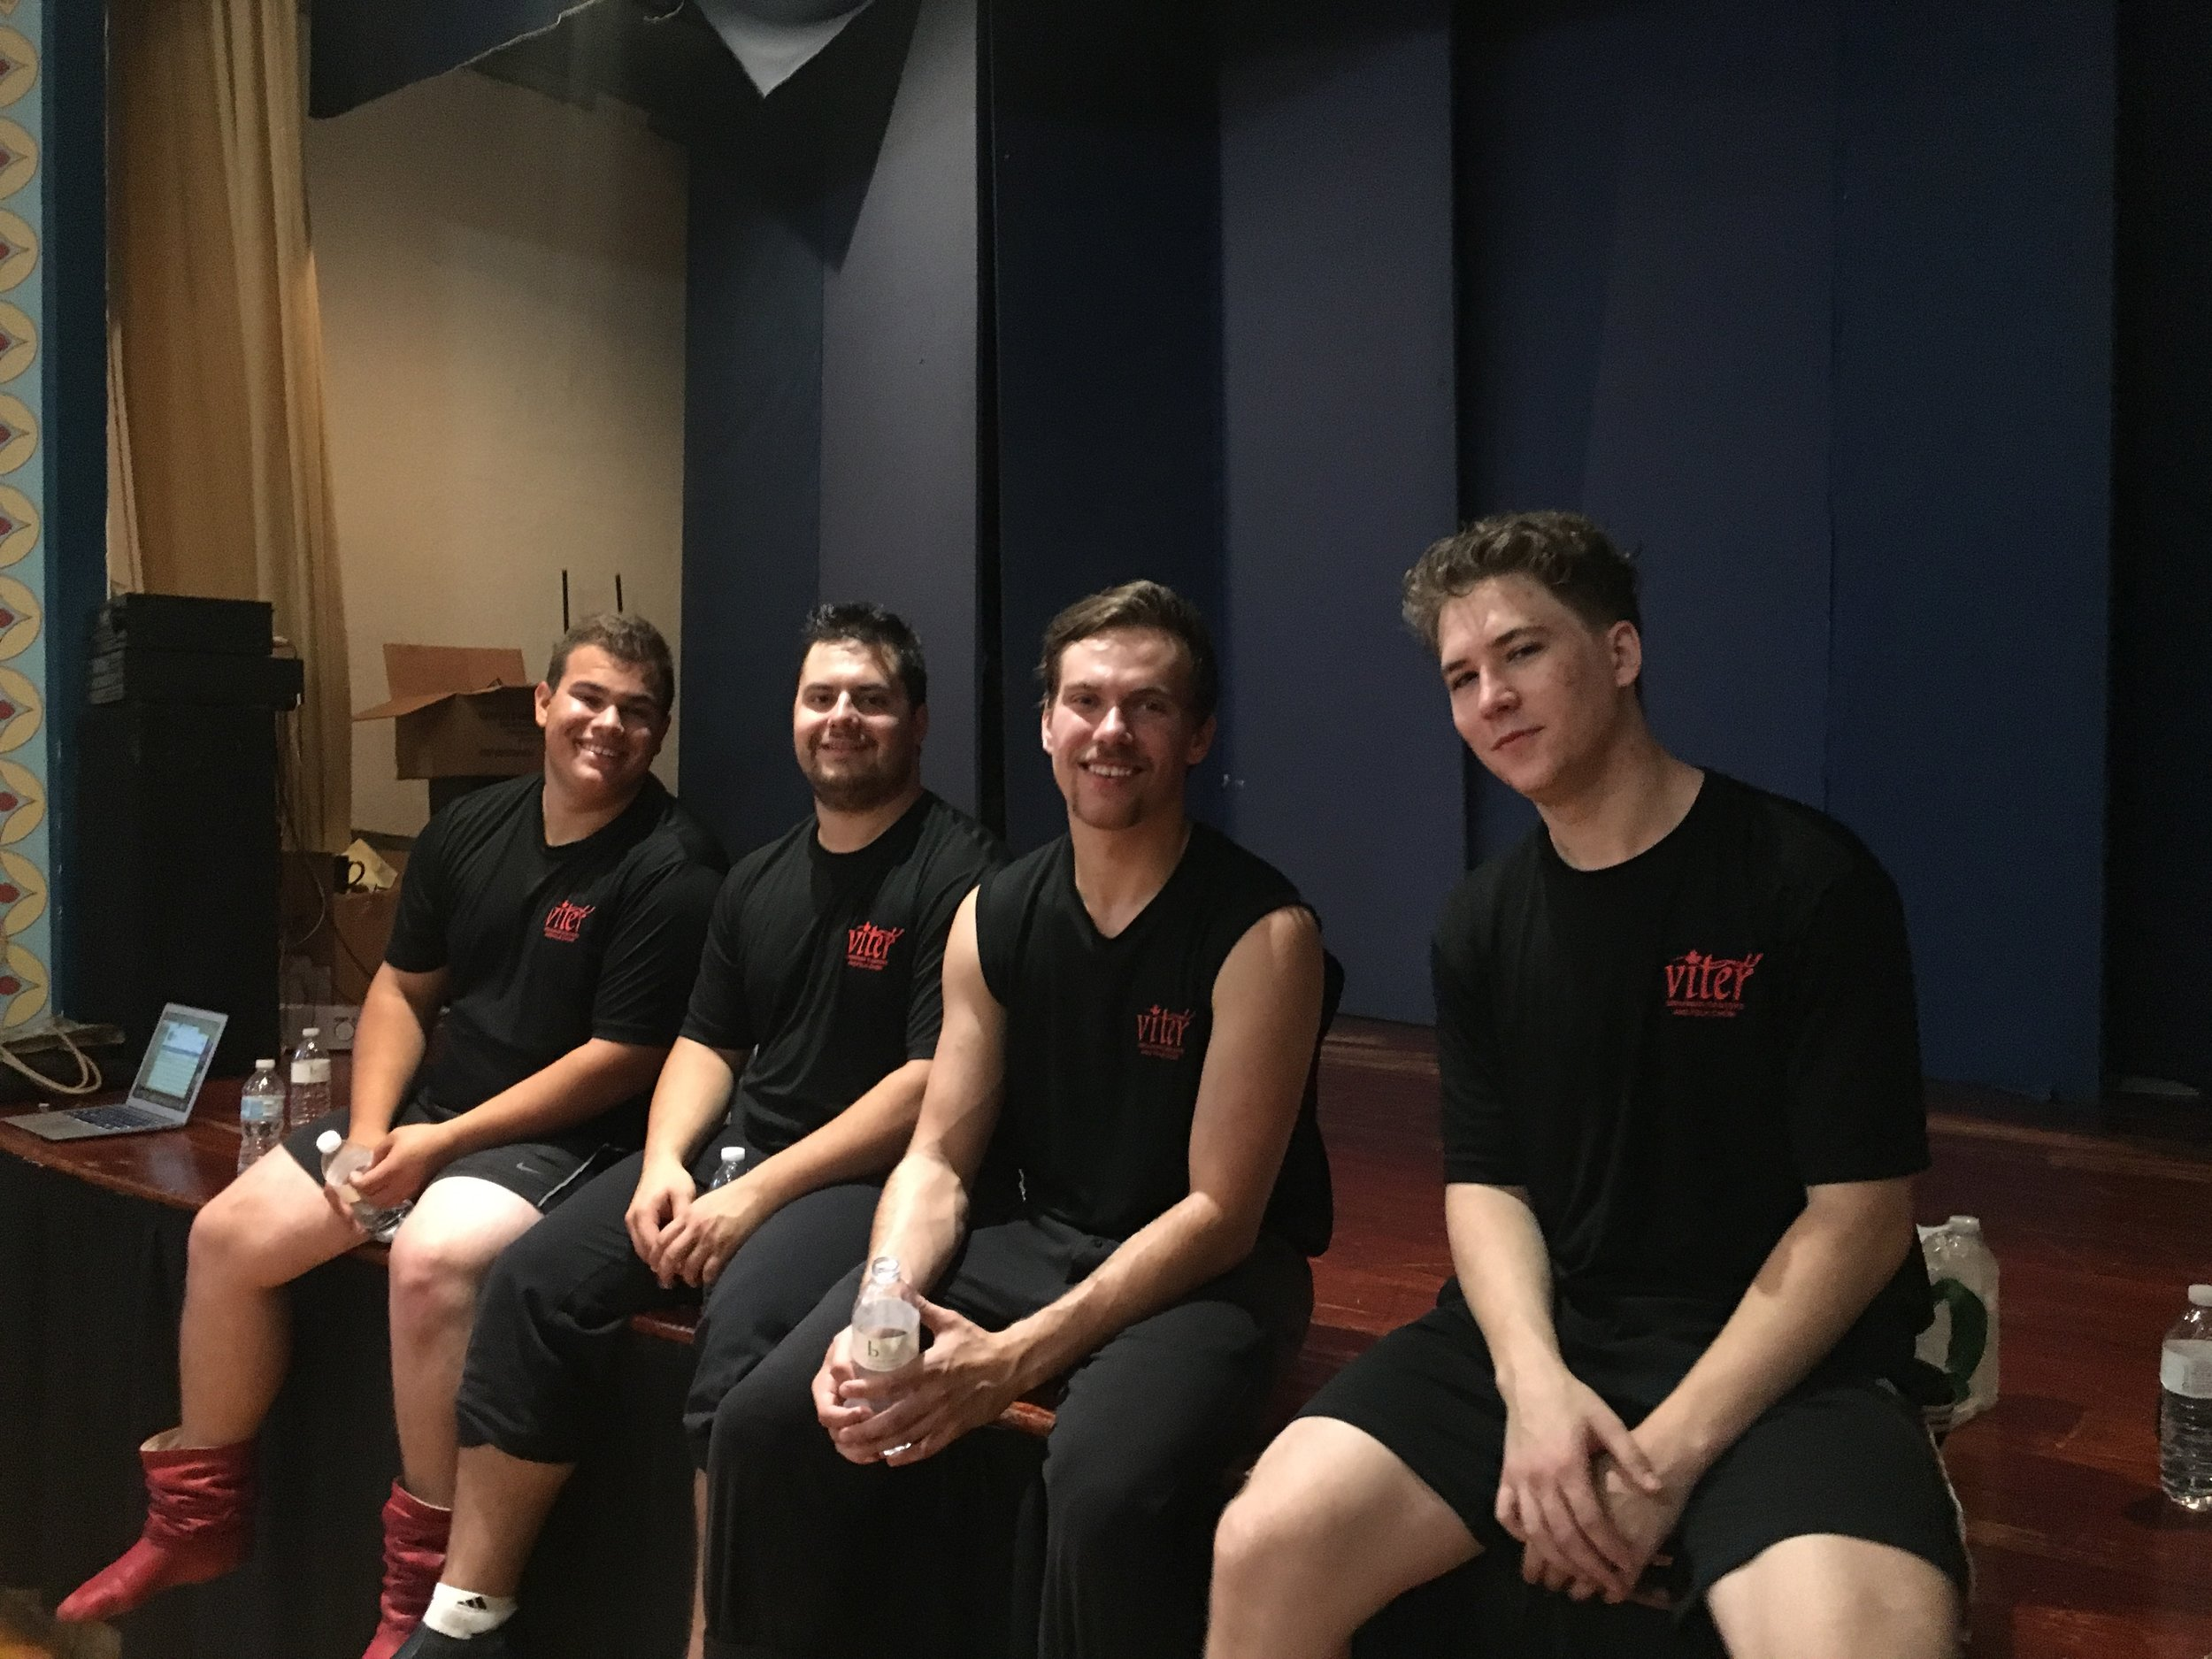 Our handsome dancer boys at rehearsal!